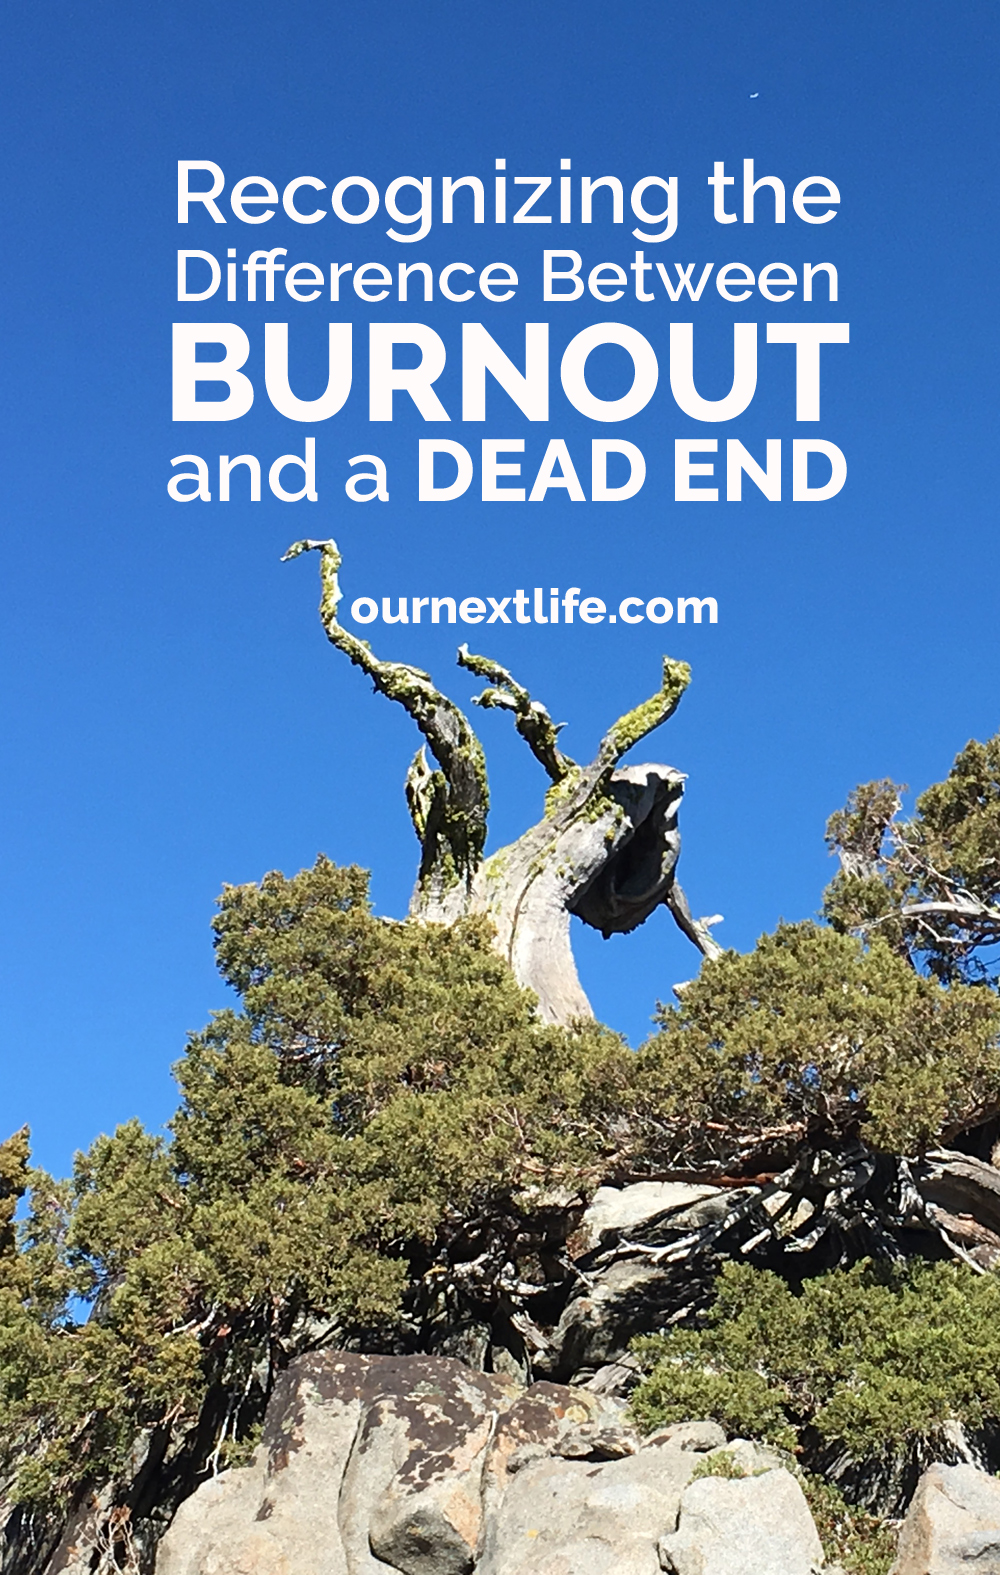 Recognizing the Difference Between Burnout and a Dead End – Our Next